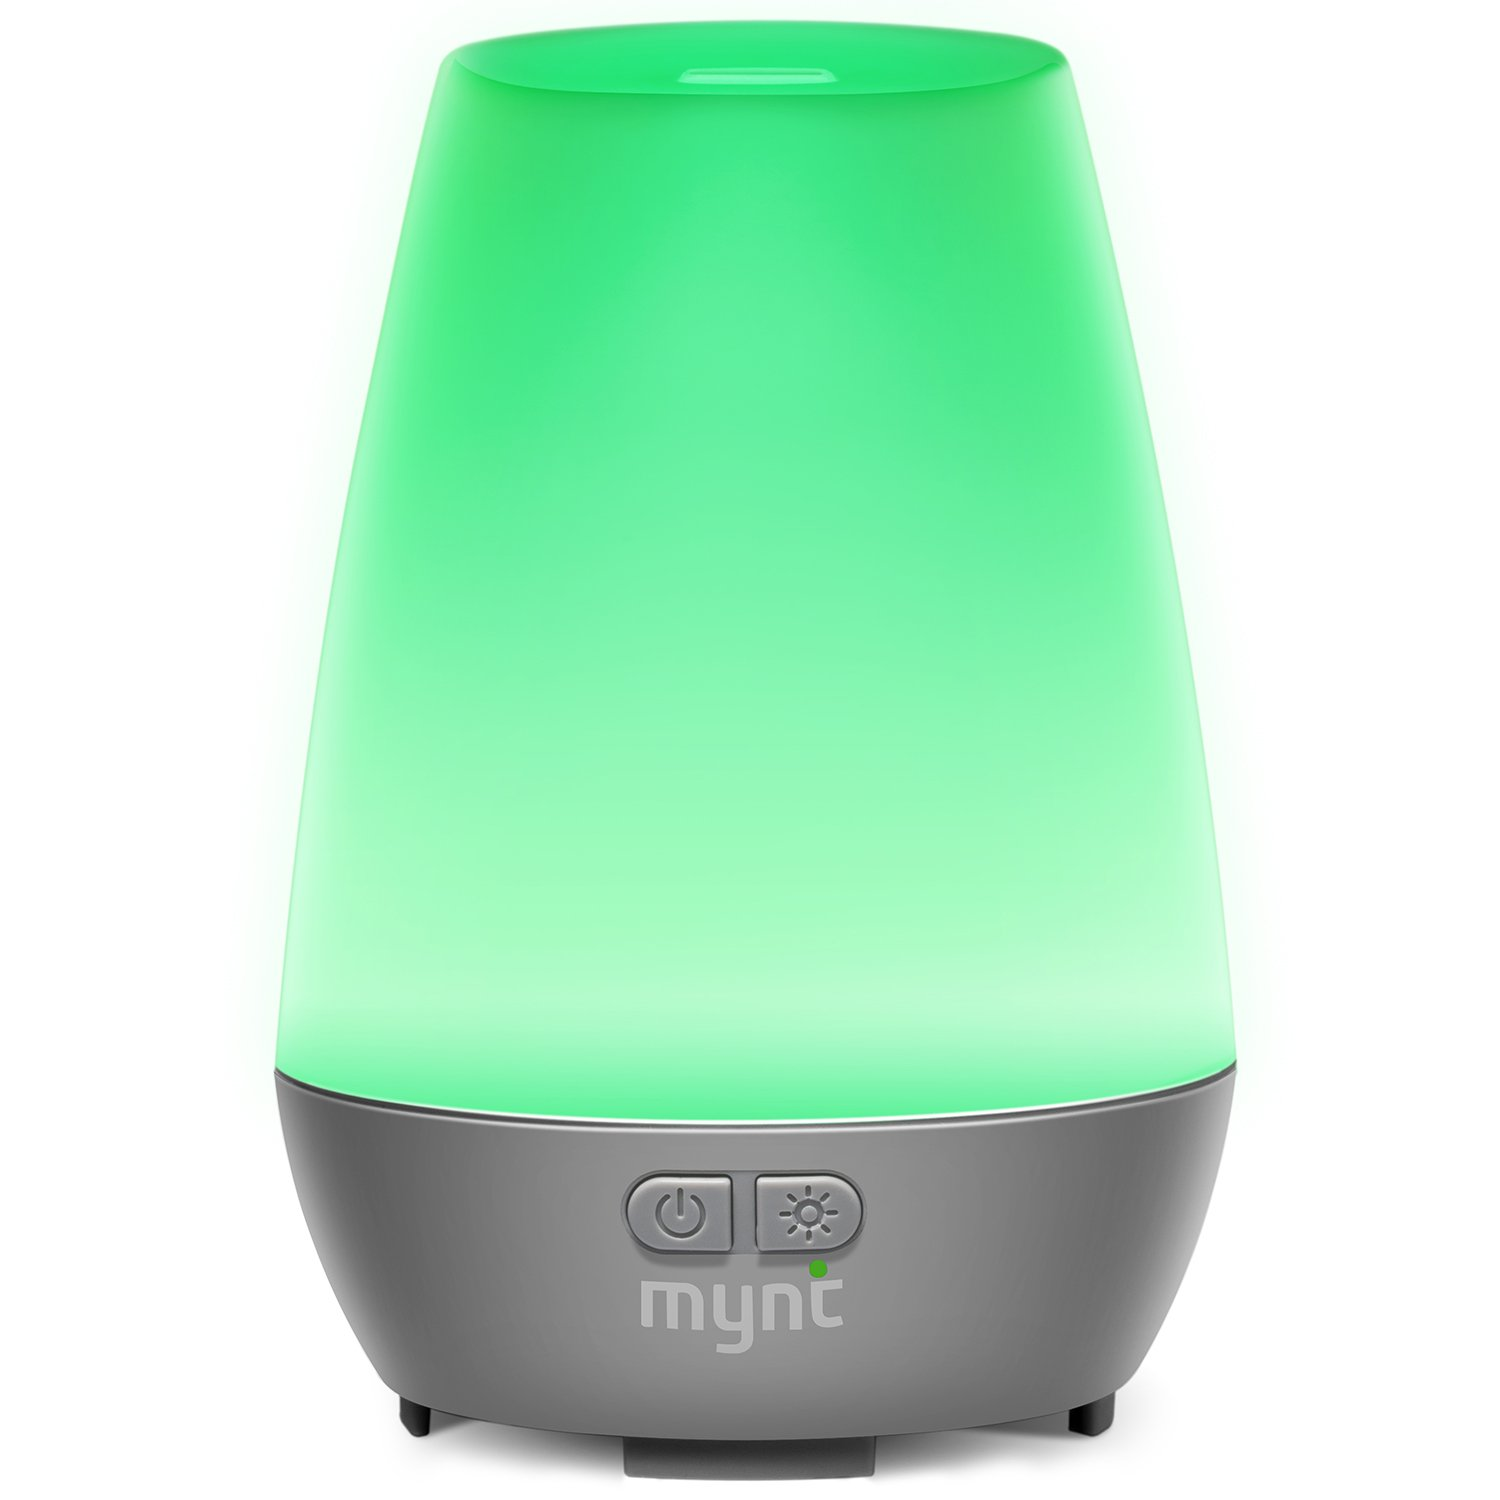 Mynt Essential Oil Diffuser Cool Mist 100ml Humidifier 10+ Hours with 7 Colors LED Lights Waterless BPA Free Auto Shut-off for Home Office Bedroom Baby Room OceanPal Technology